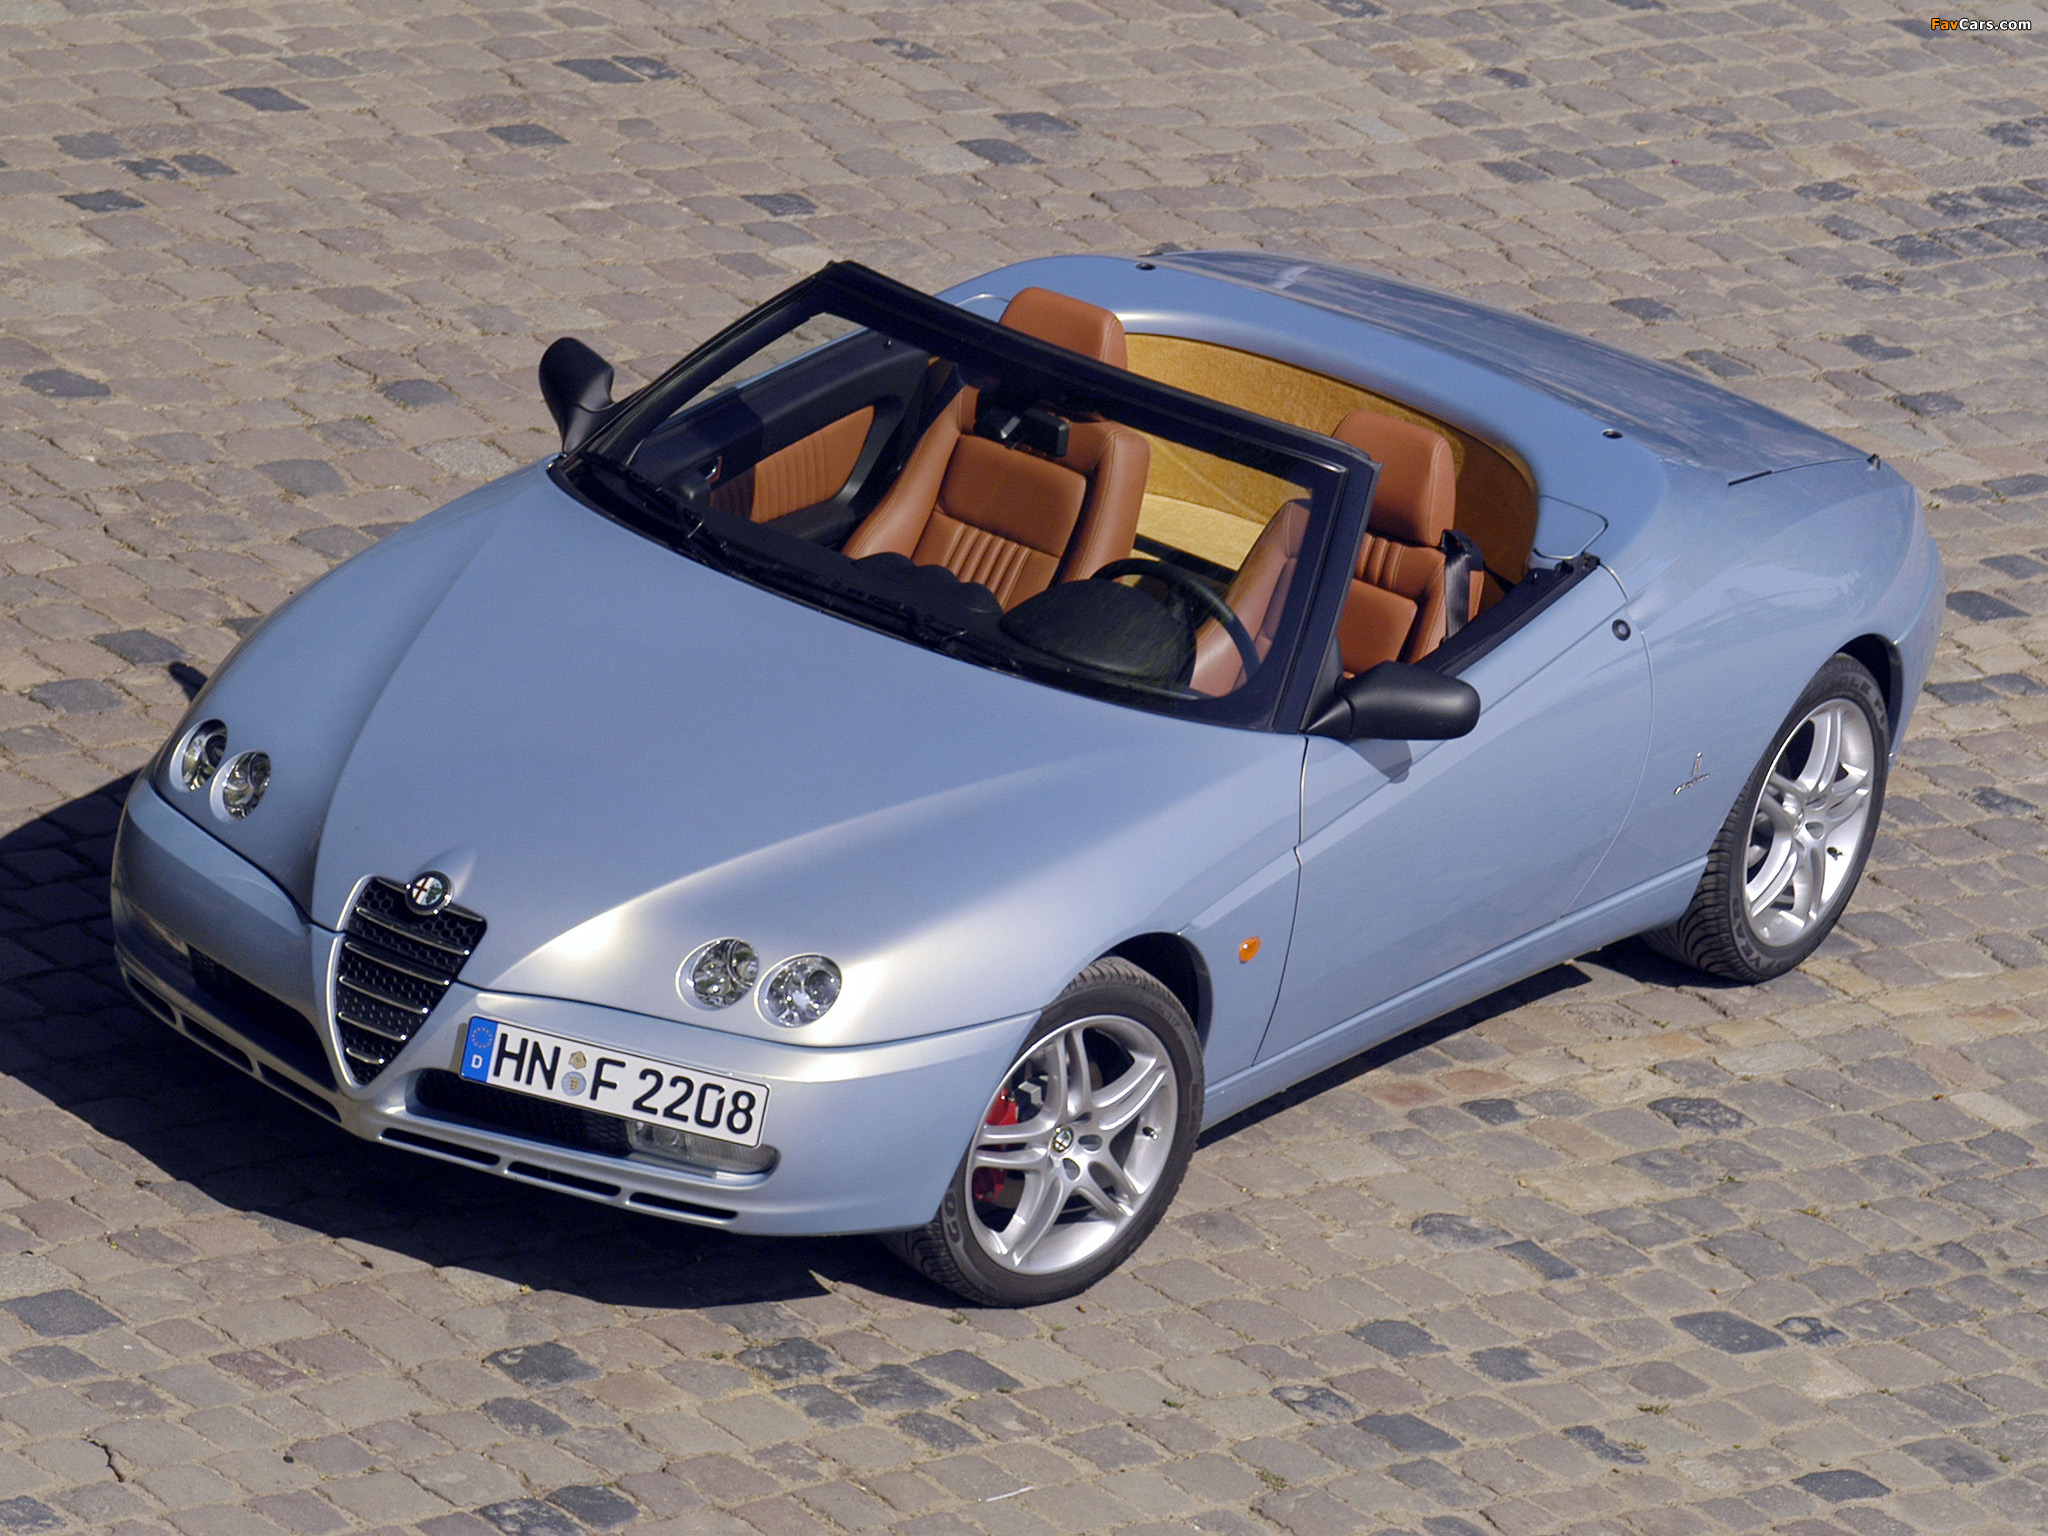 alfa romeo spider 916 2003 2005 photos 2048x1536. Black Bedroom Furniture Sets. Home Design Ideas